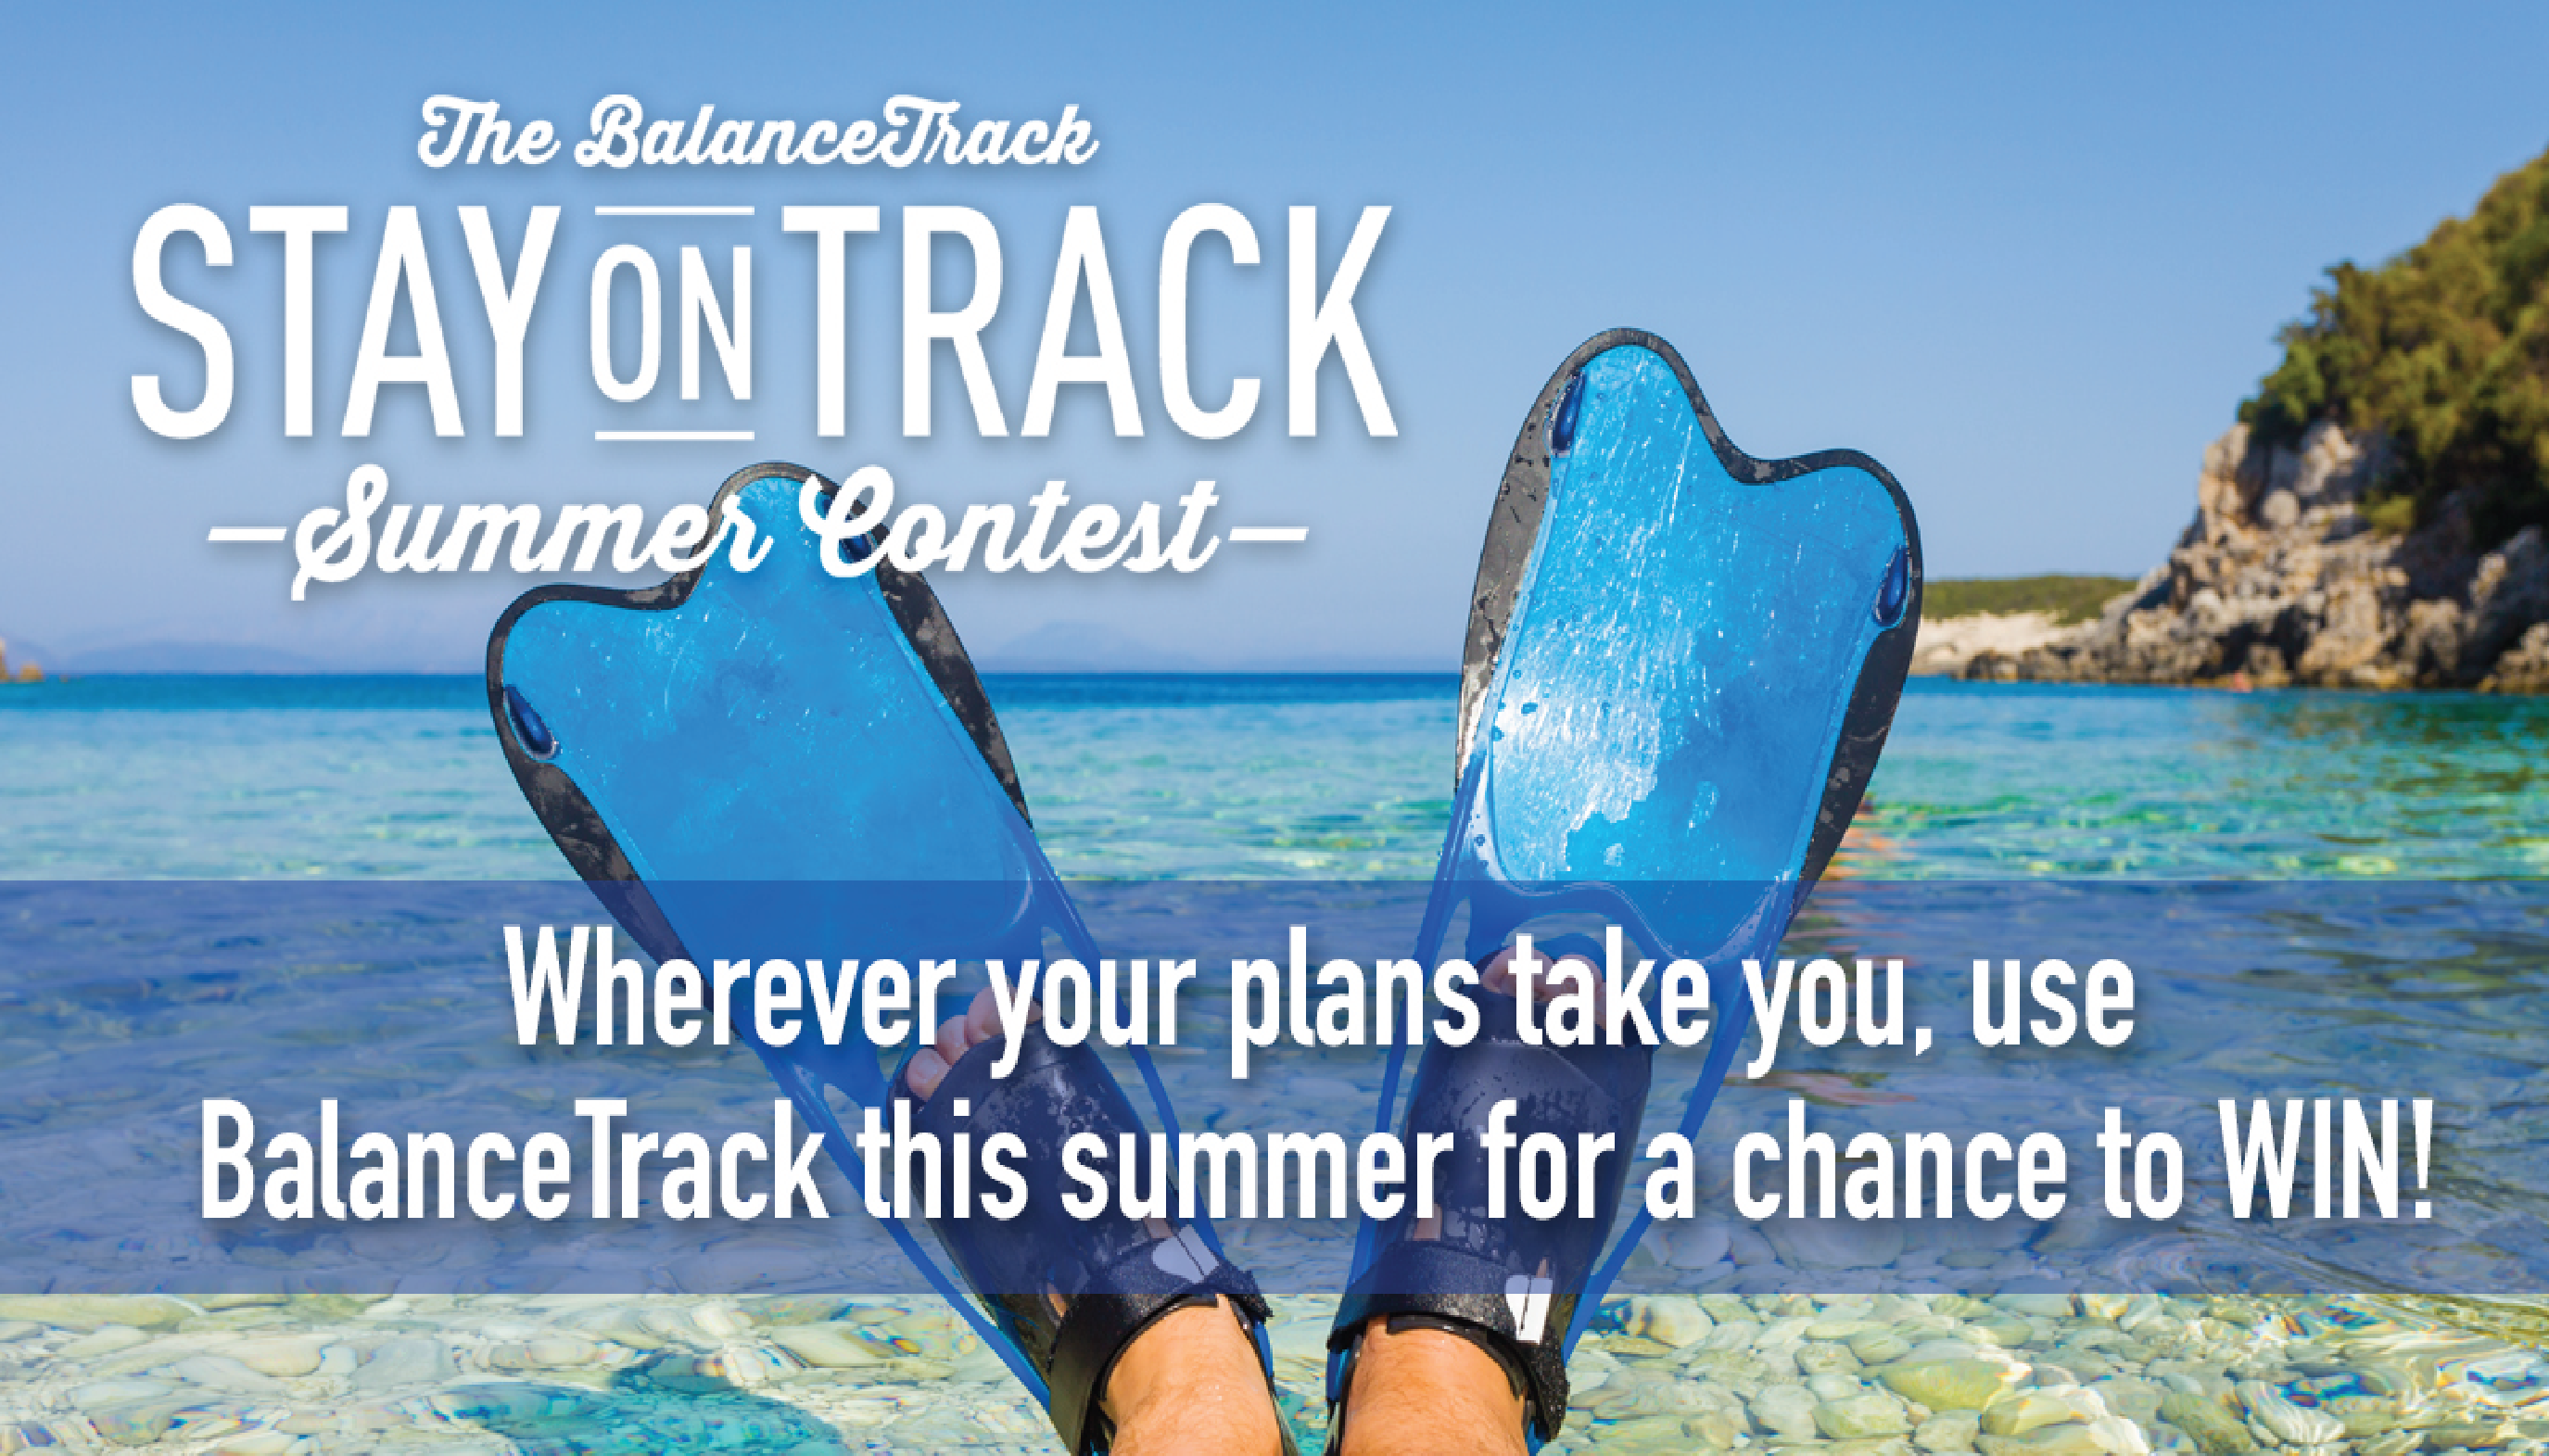 The Third Annual BalanceTrack Stay On Track Contest!